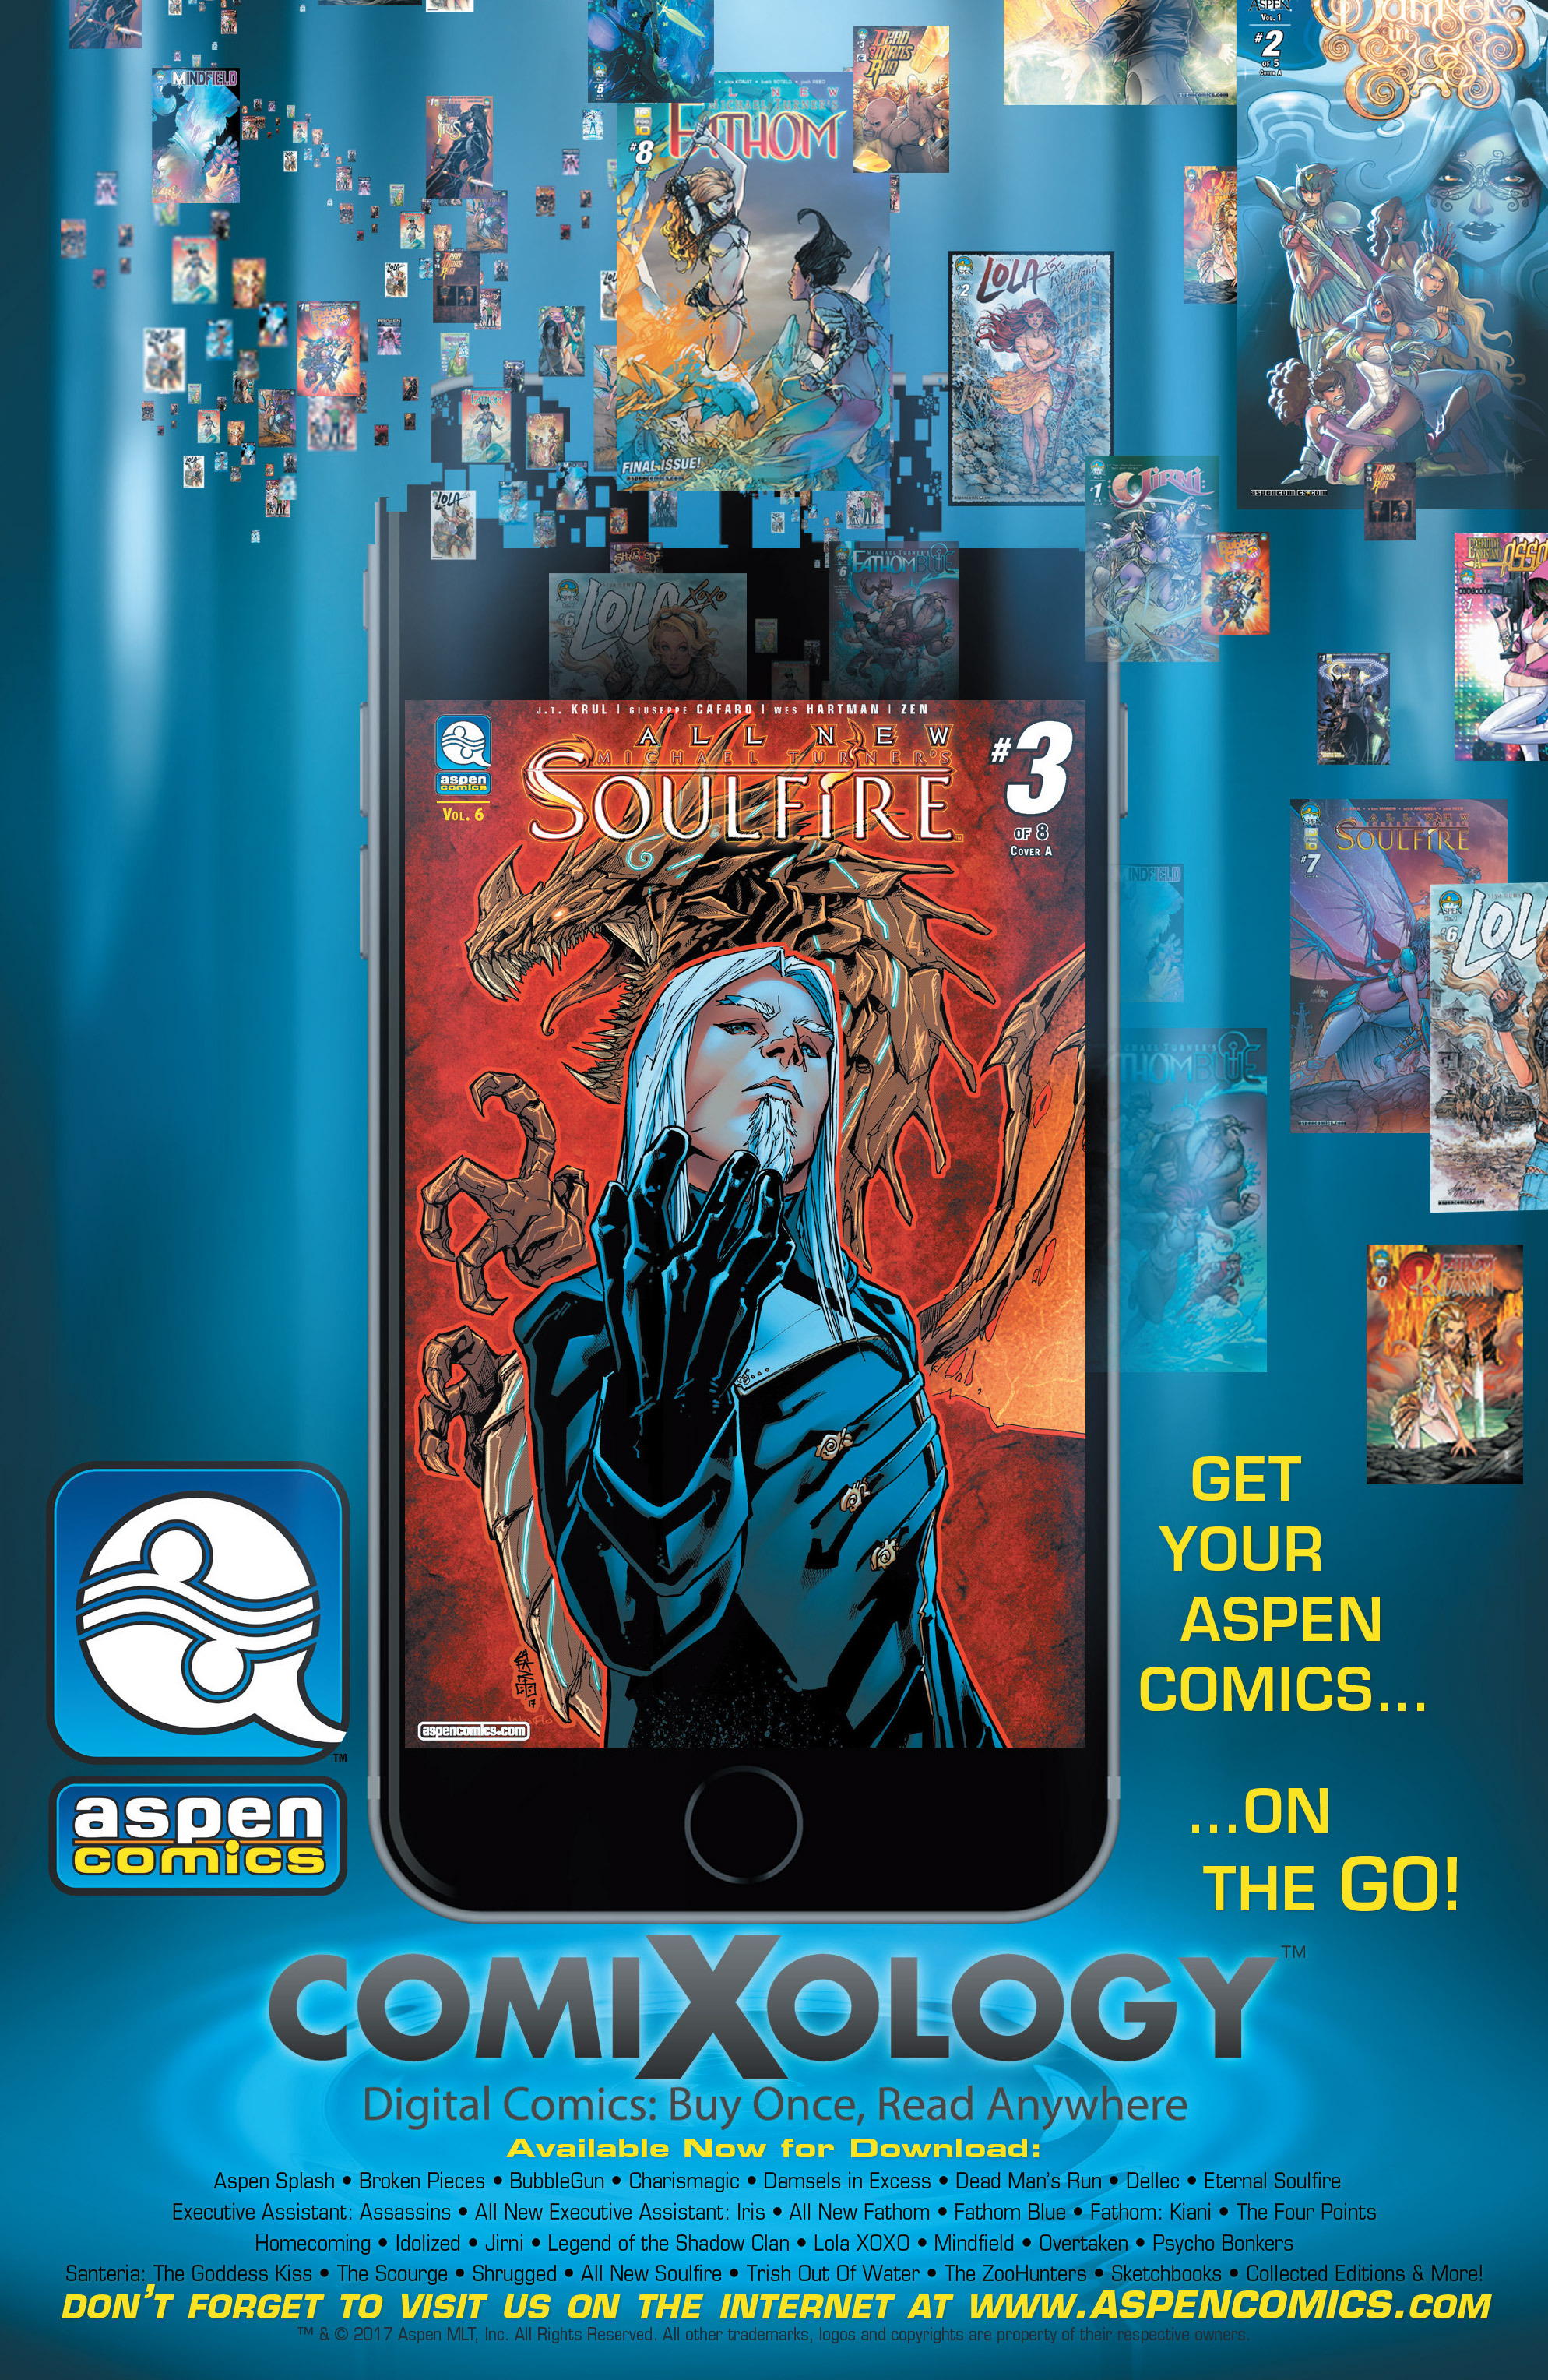 Read online All-New Soulfire Vol. 6 comic -  Issue #3 - 24